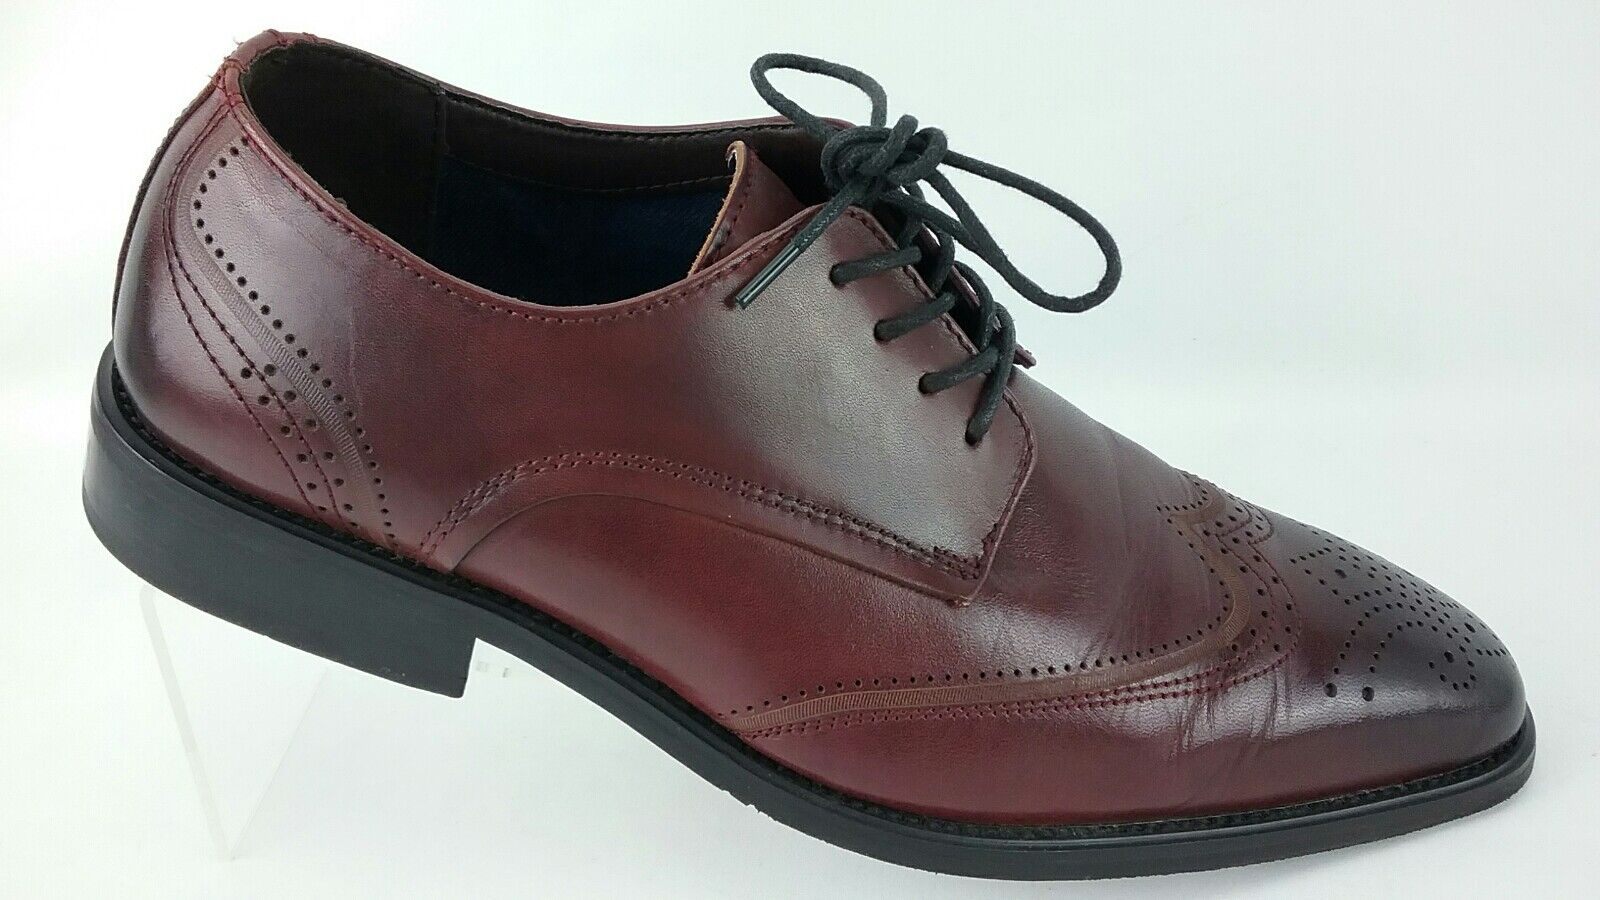 La Milano Men's Burgundy Leather Wing Tip Dress  shoes Size 10.5 Lace Ups R5S7